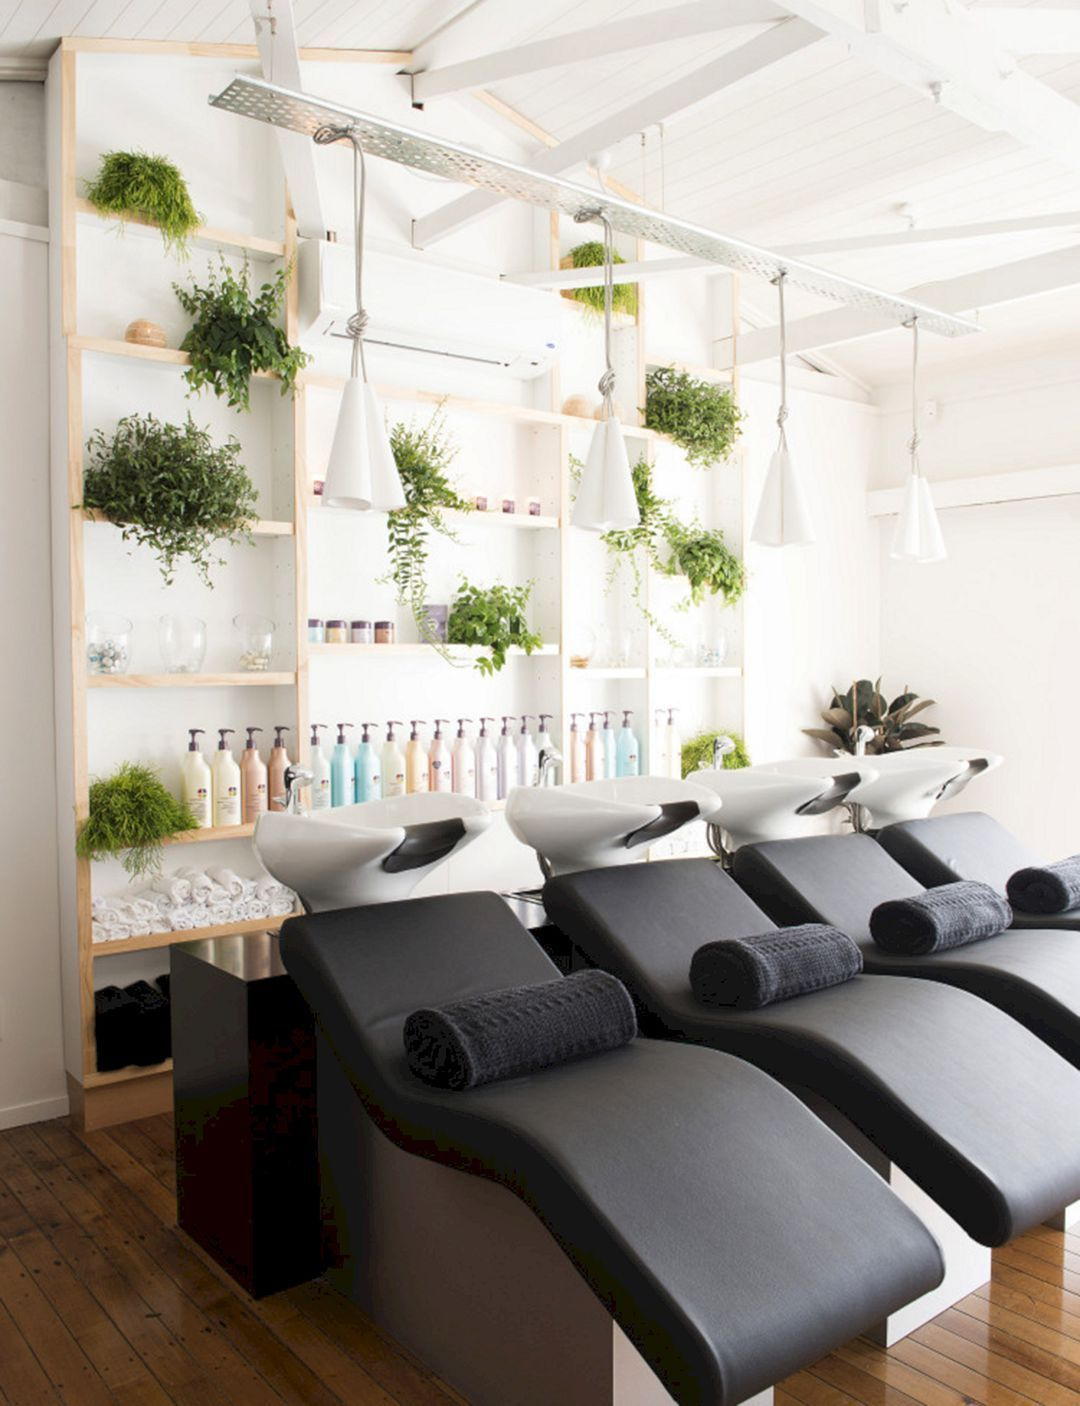 19+ Best Home Salon Decor Ideas For Private Salon On Your Home